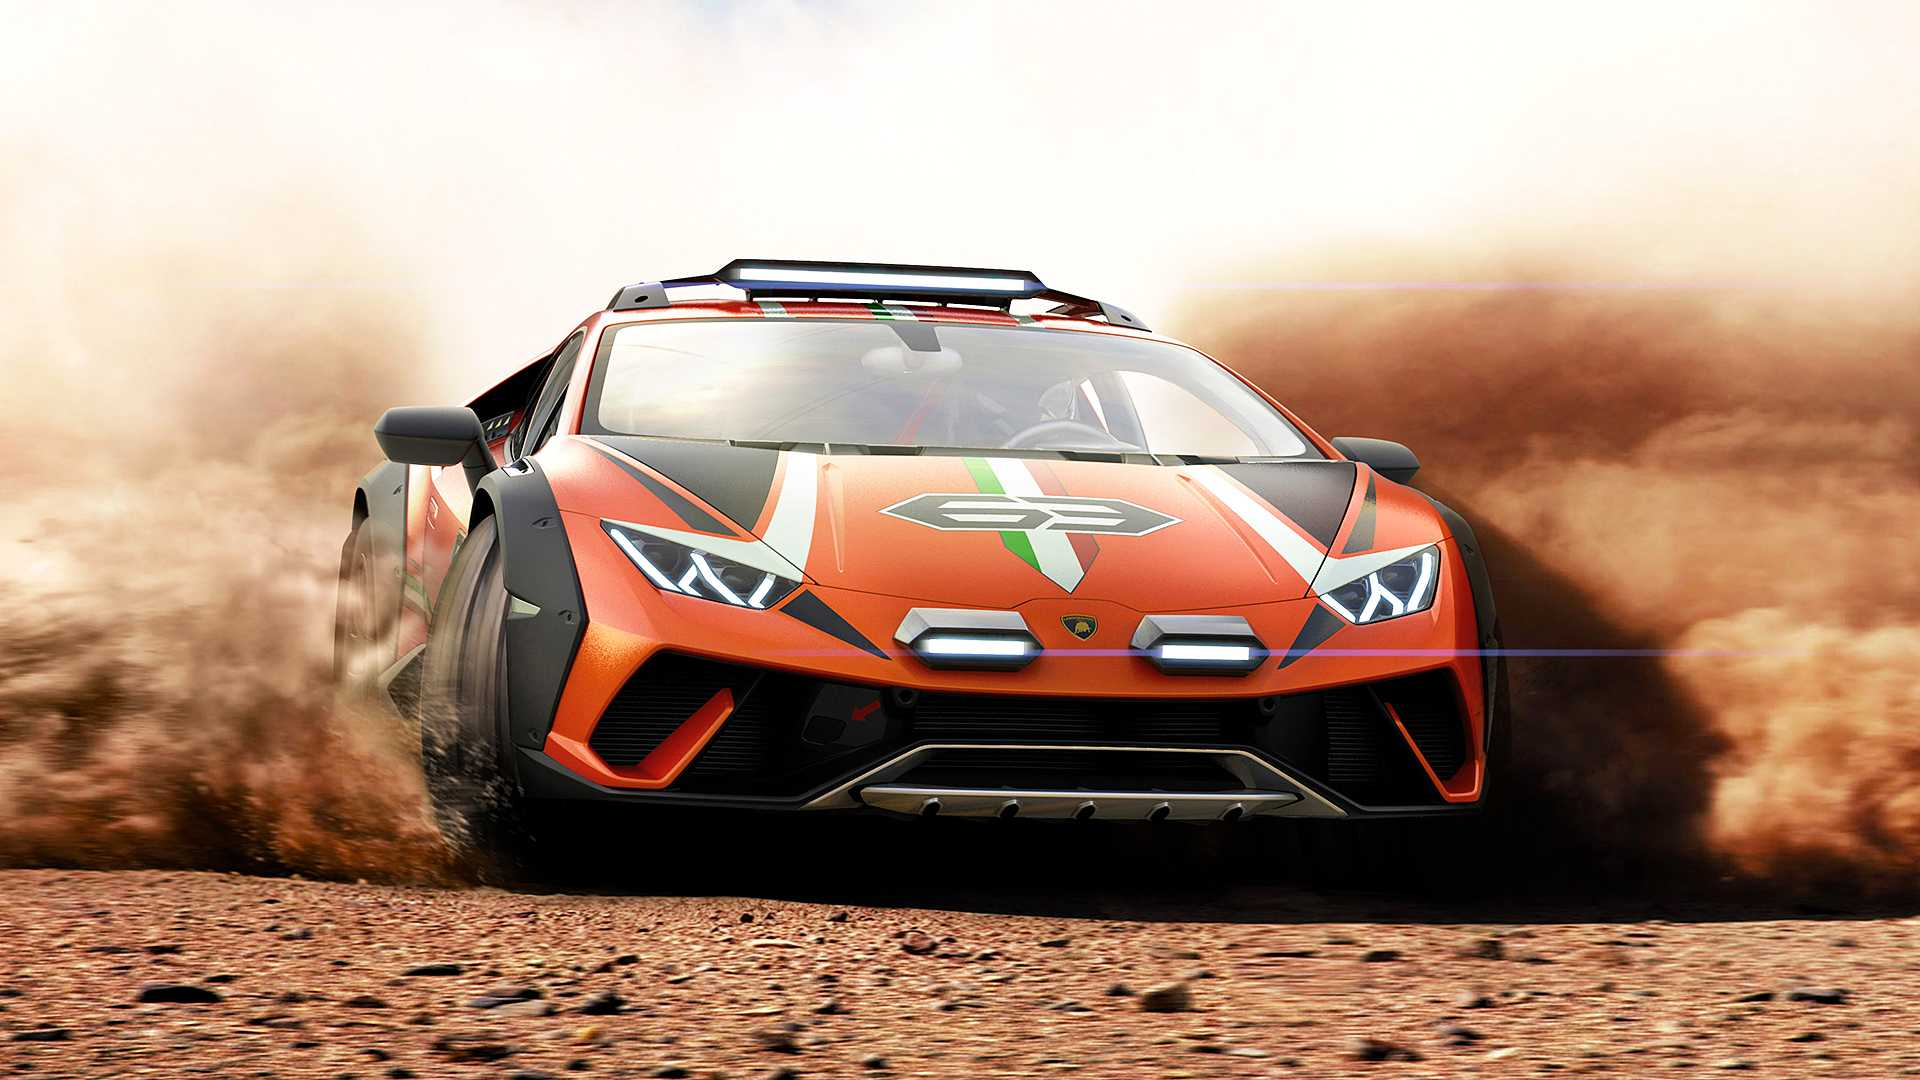 2019 Lamborghini Huracán Sterrato Concept Off-Road Wallpapers (1)